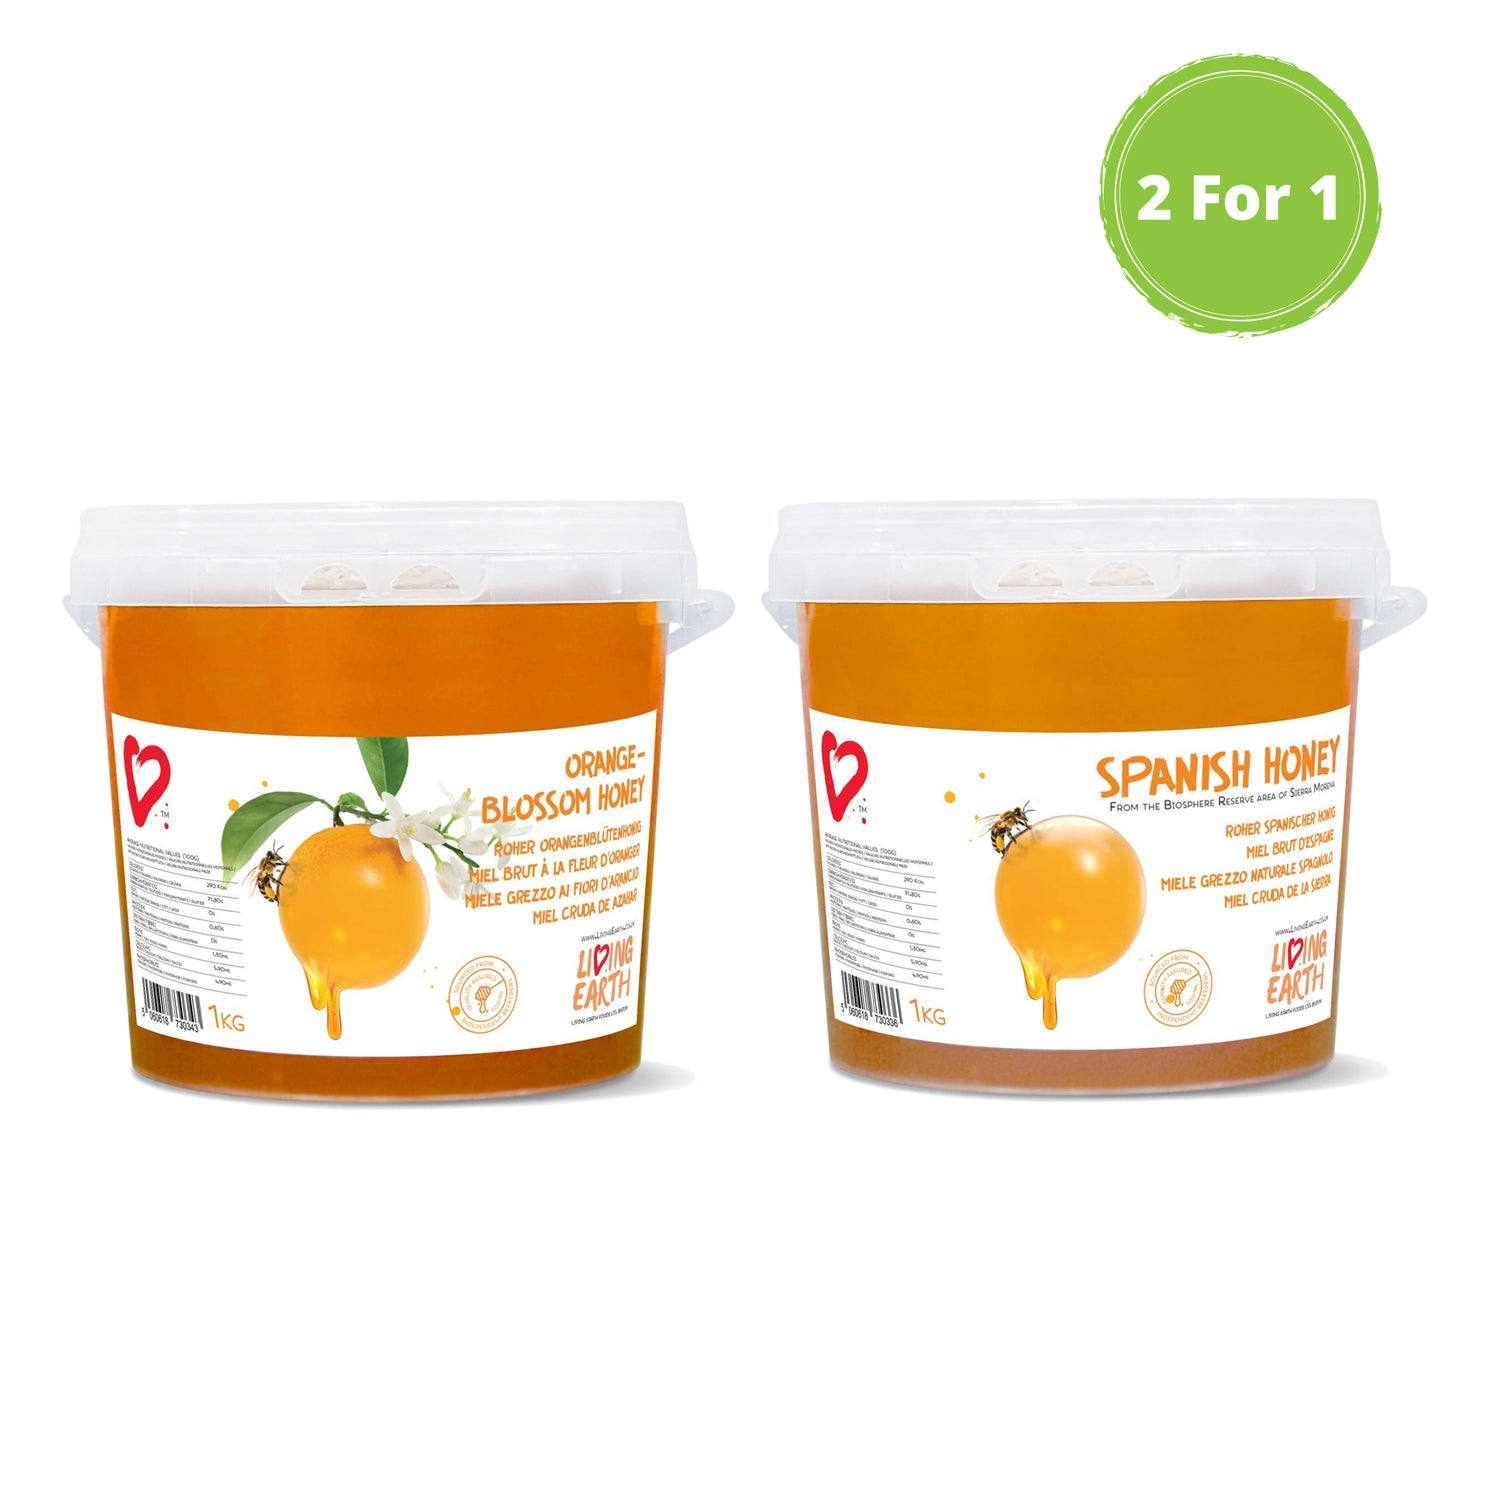 2 x 1 Offer, 2 KGs - Spanish (1Kg) & Orange Blossom Honey (1Kg)